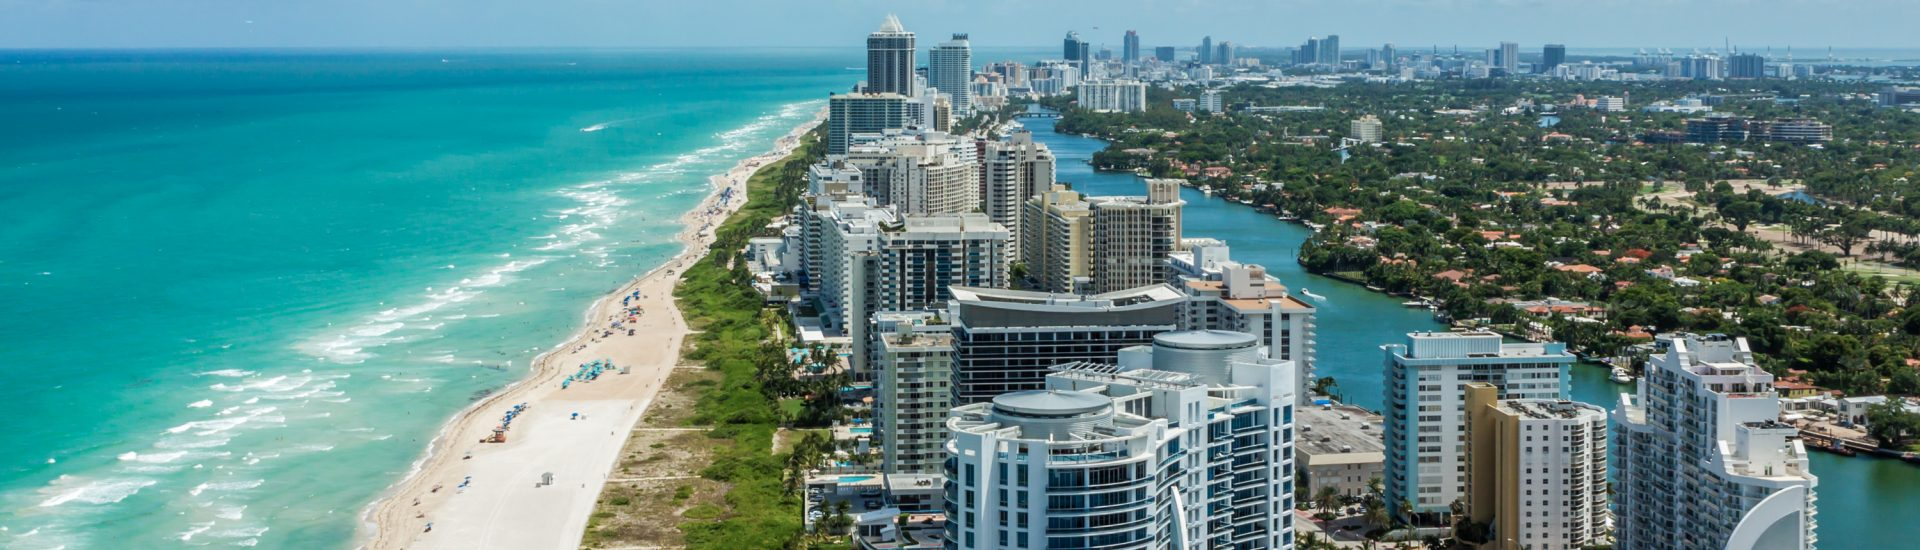 Miami Attractions Things to do in Miami Day Trips and Miami Bahamas Tour. Take a day trip to the Bahamas from Miami with Bahamas Air Tours.